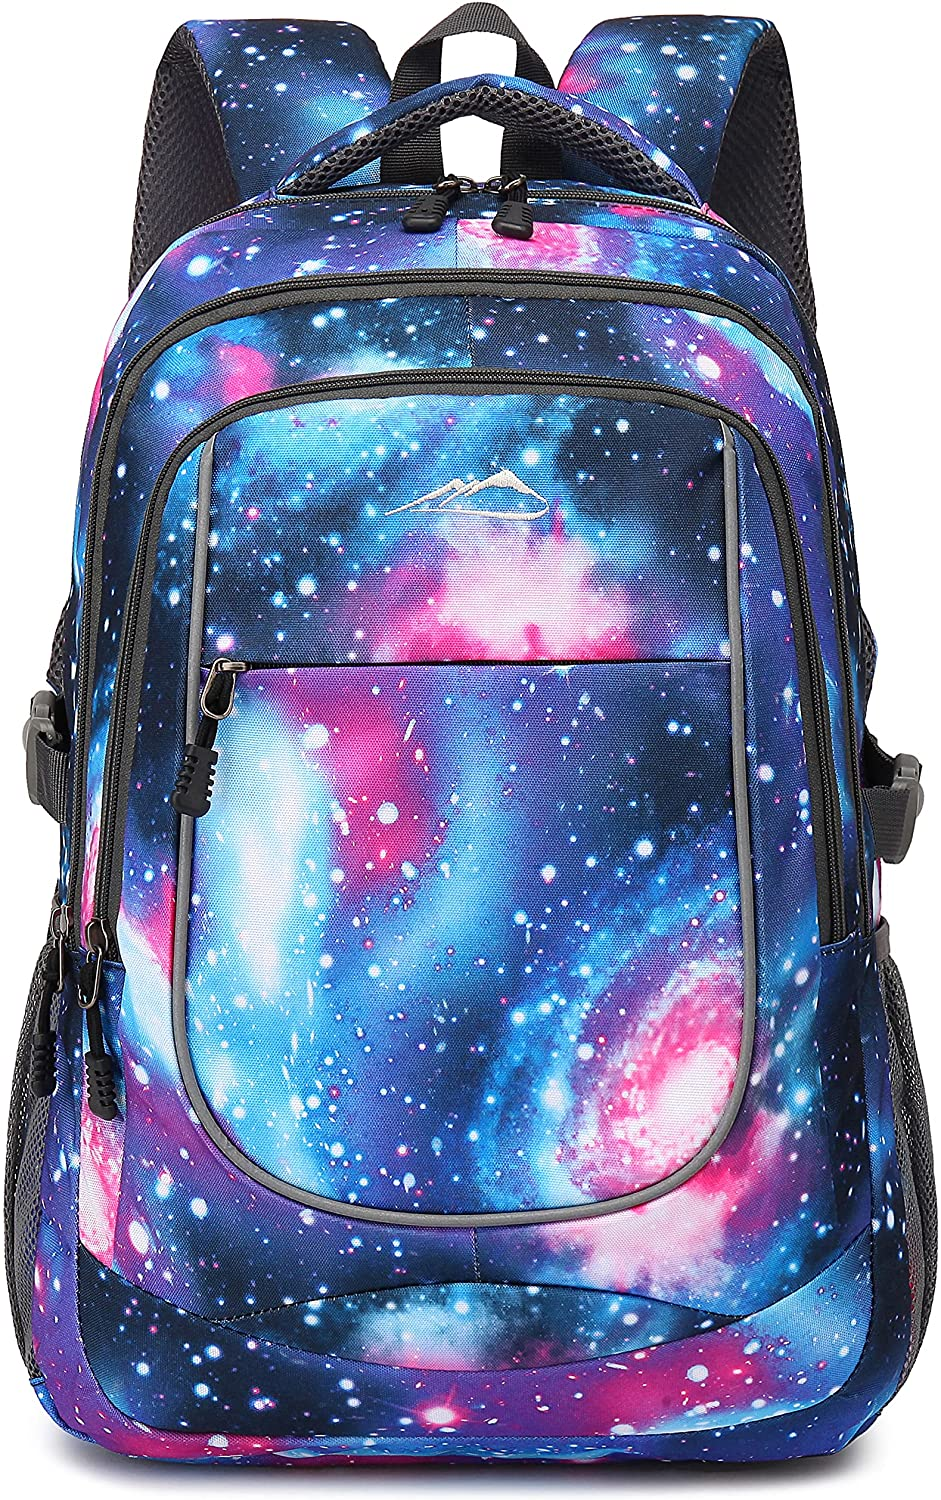 Backpack Bookbag for School College Student Travel Business Hiking Fit Laptop Up to 15.6 Inch